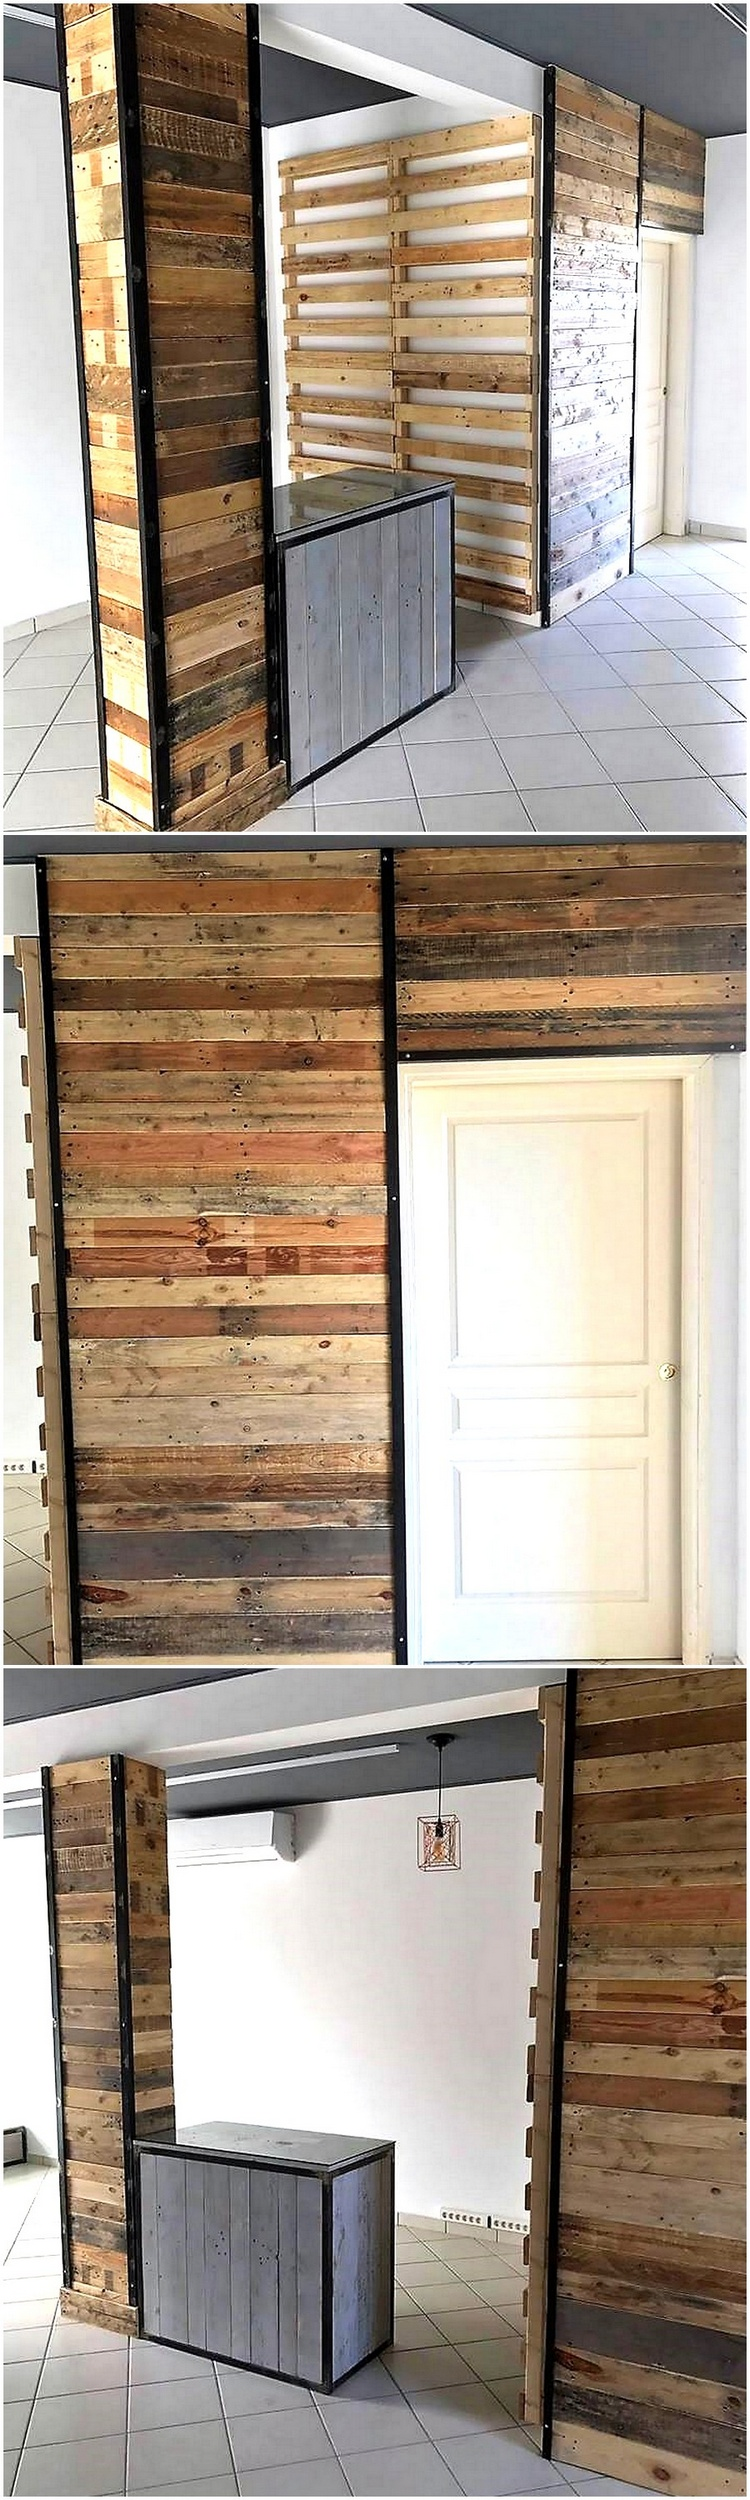 recycled pallets wall cladding